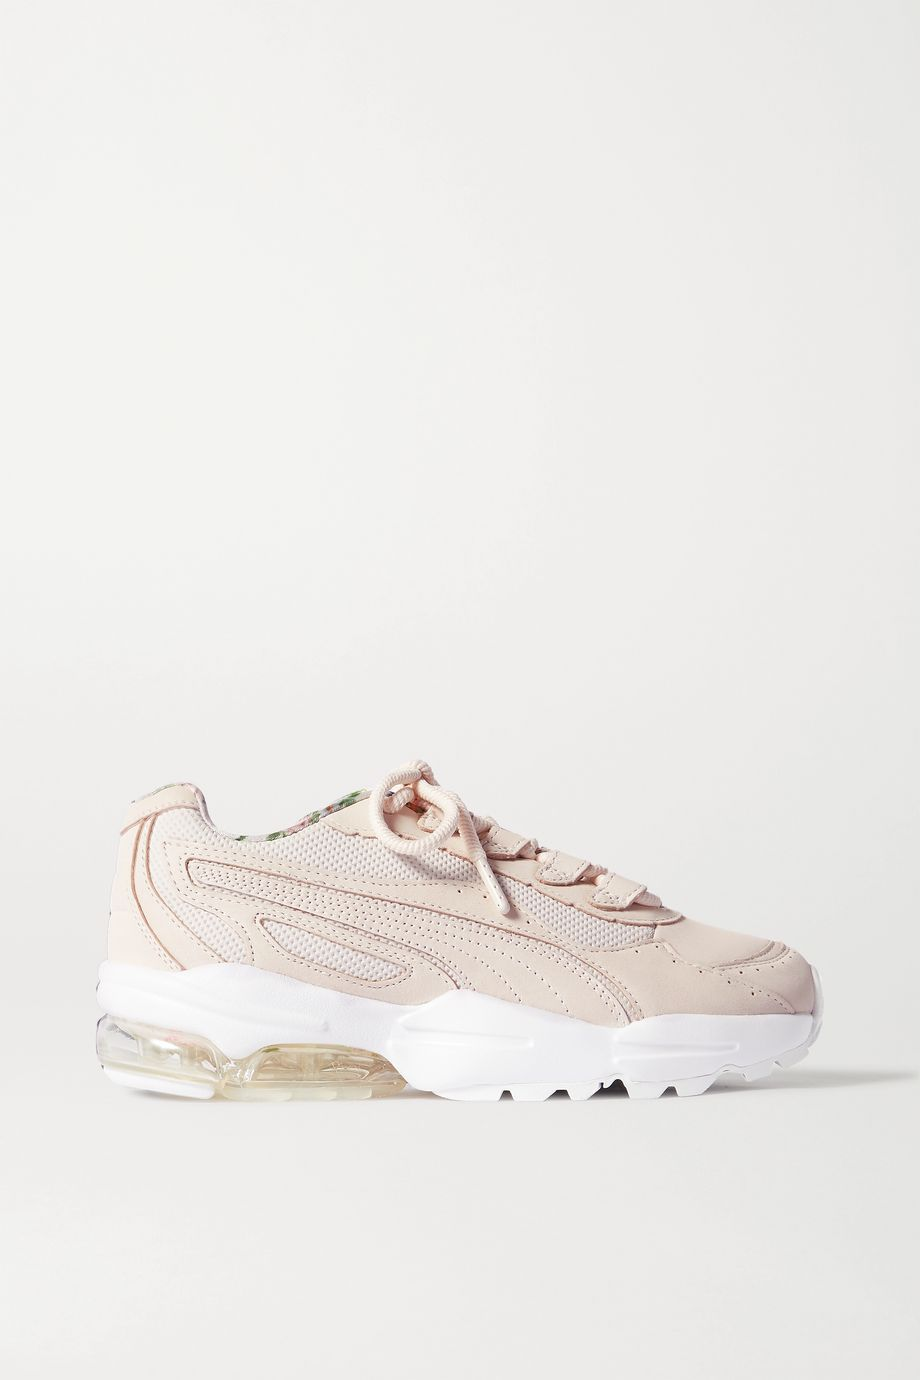 Tabitha Simmons + PUMA Cell Stellar leather and mesh sneakers